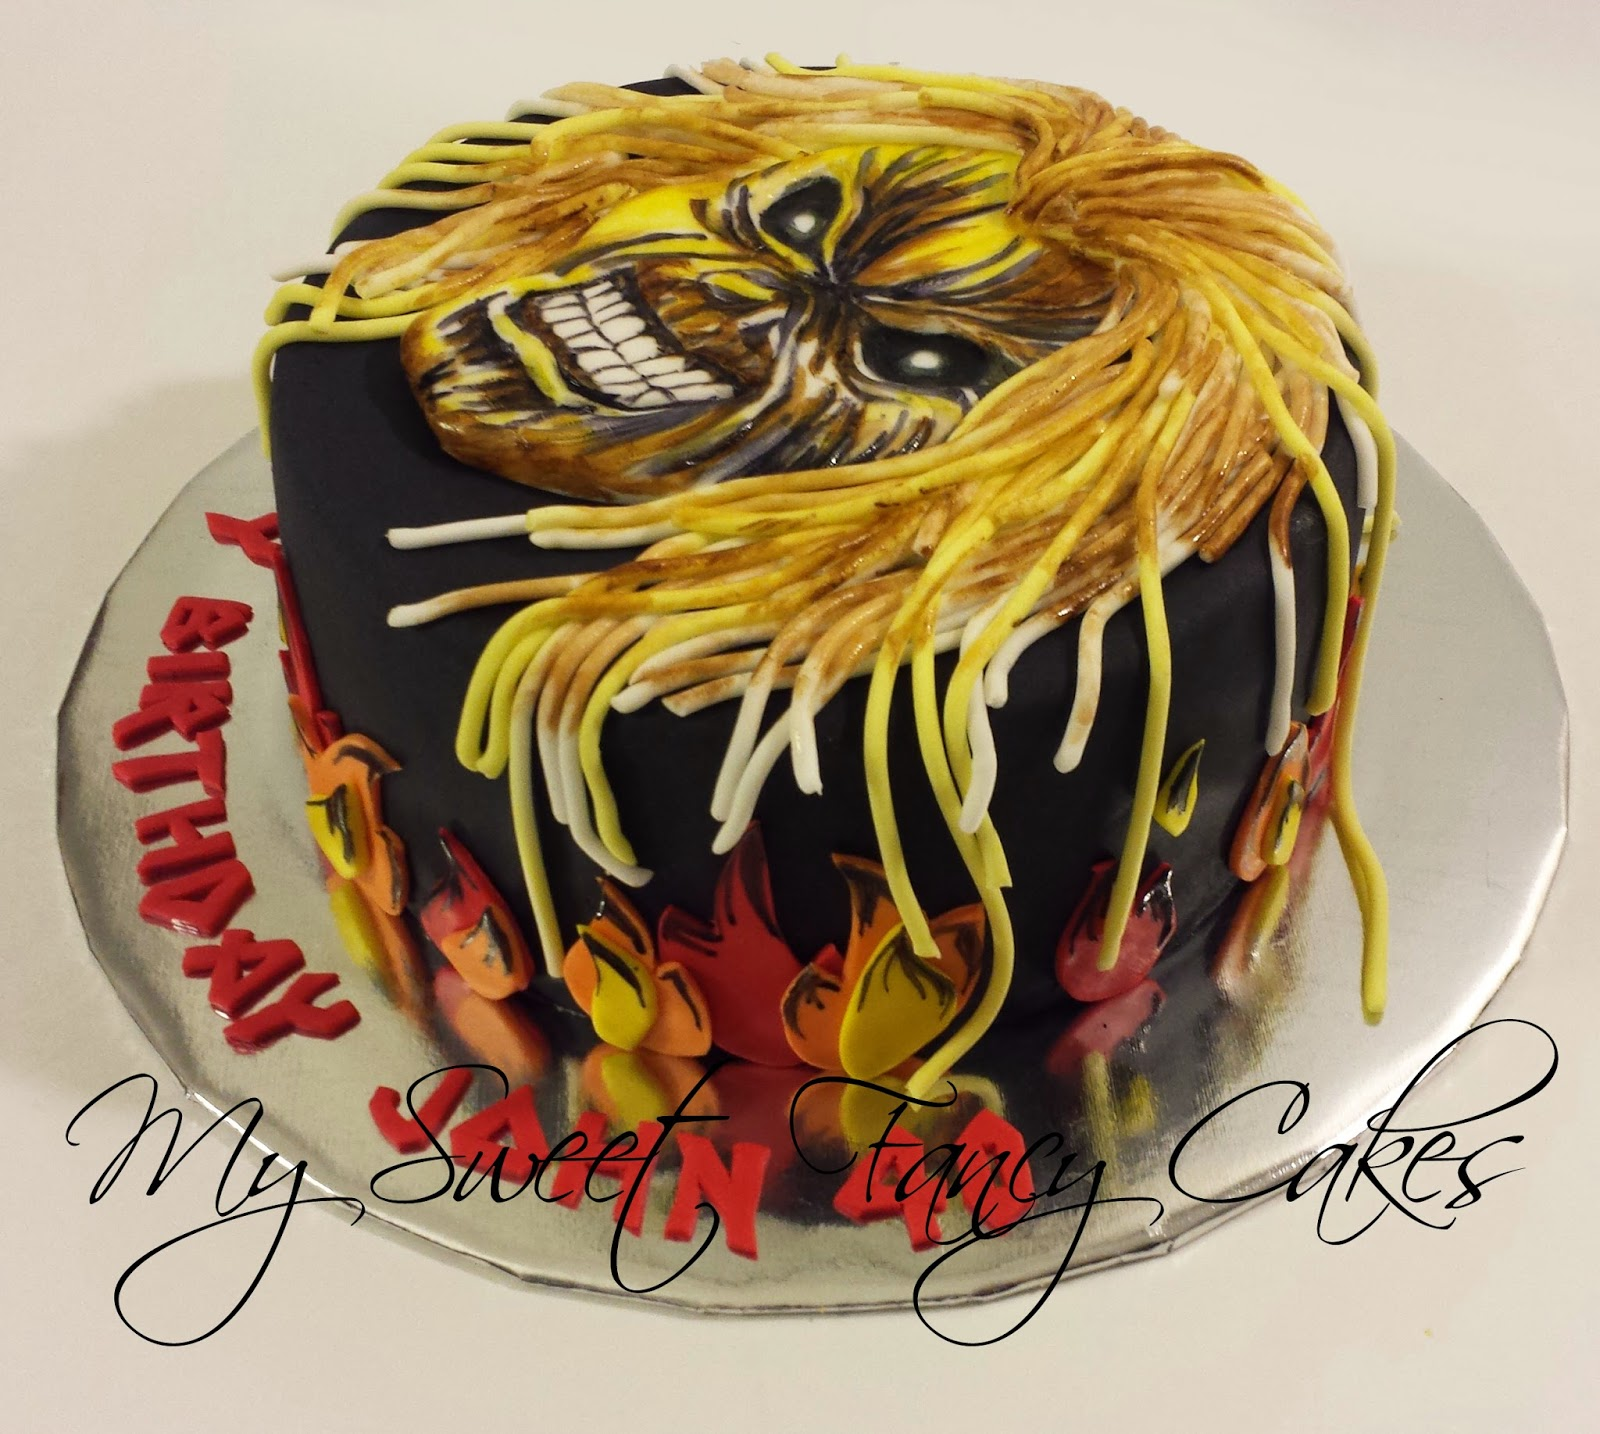 My Sweet Fancy Cakes Quot Bad A Quot Iron Maiden Cake